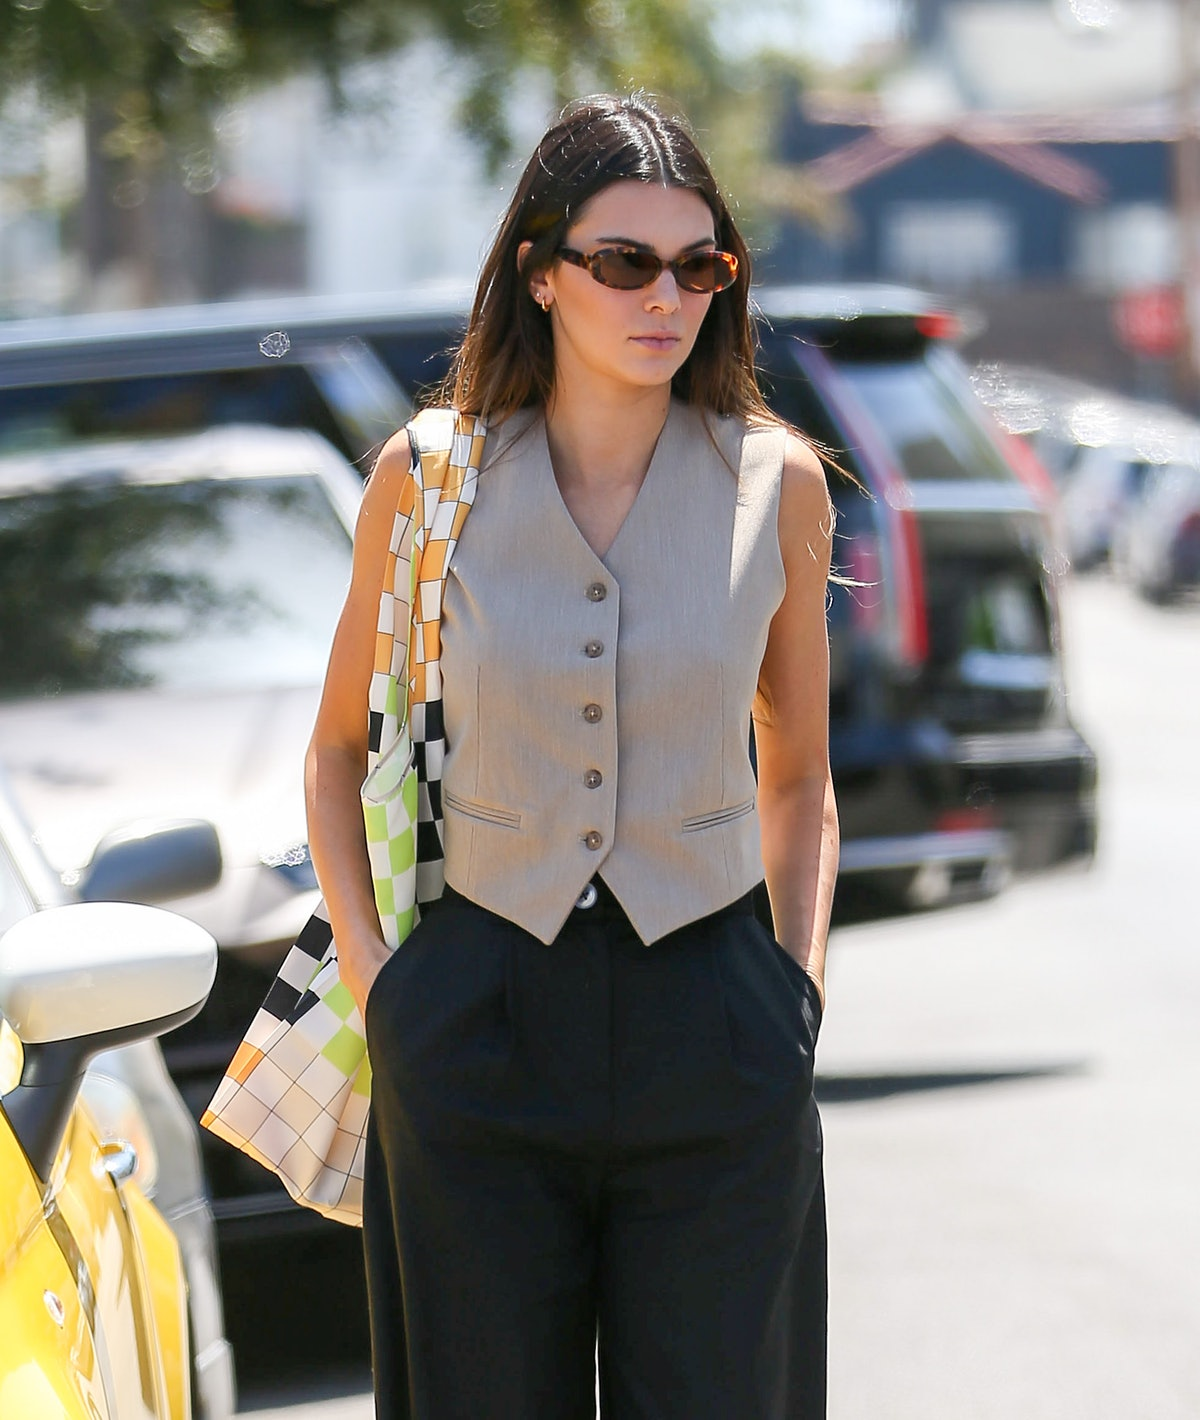 LOS ANGELES, CA - MAY 26: Kendall Jenner is seen on May 26, 2021 in Los Angeles, California.  (Photo...